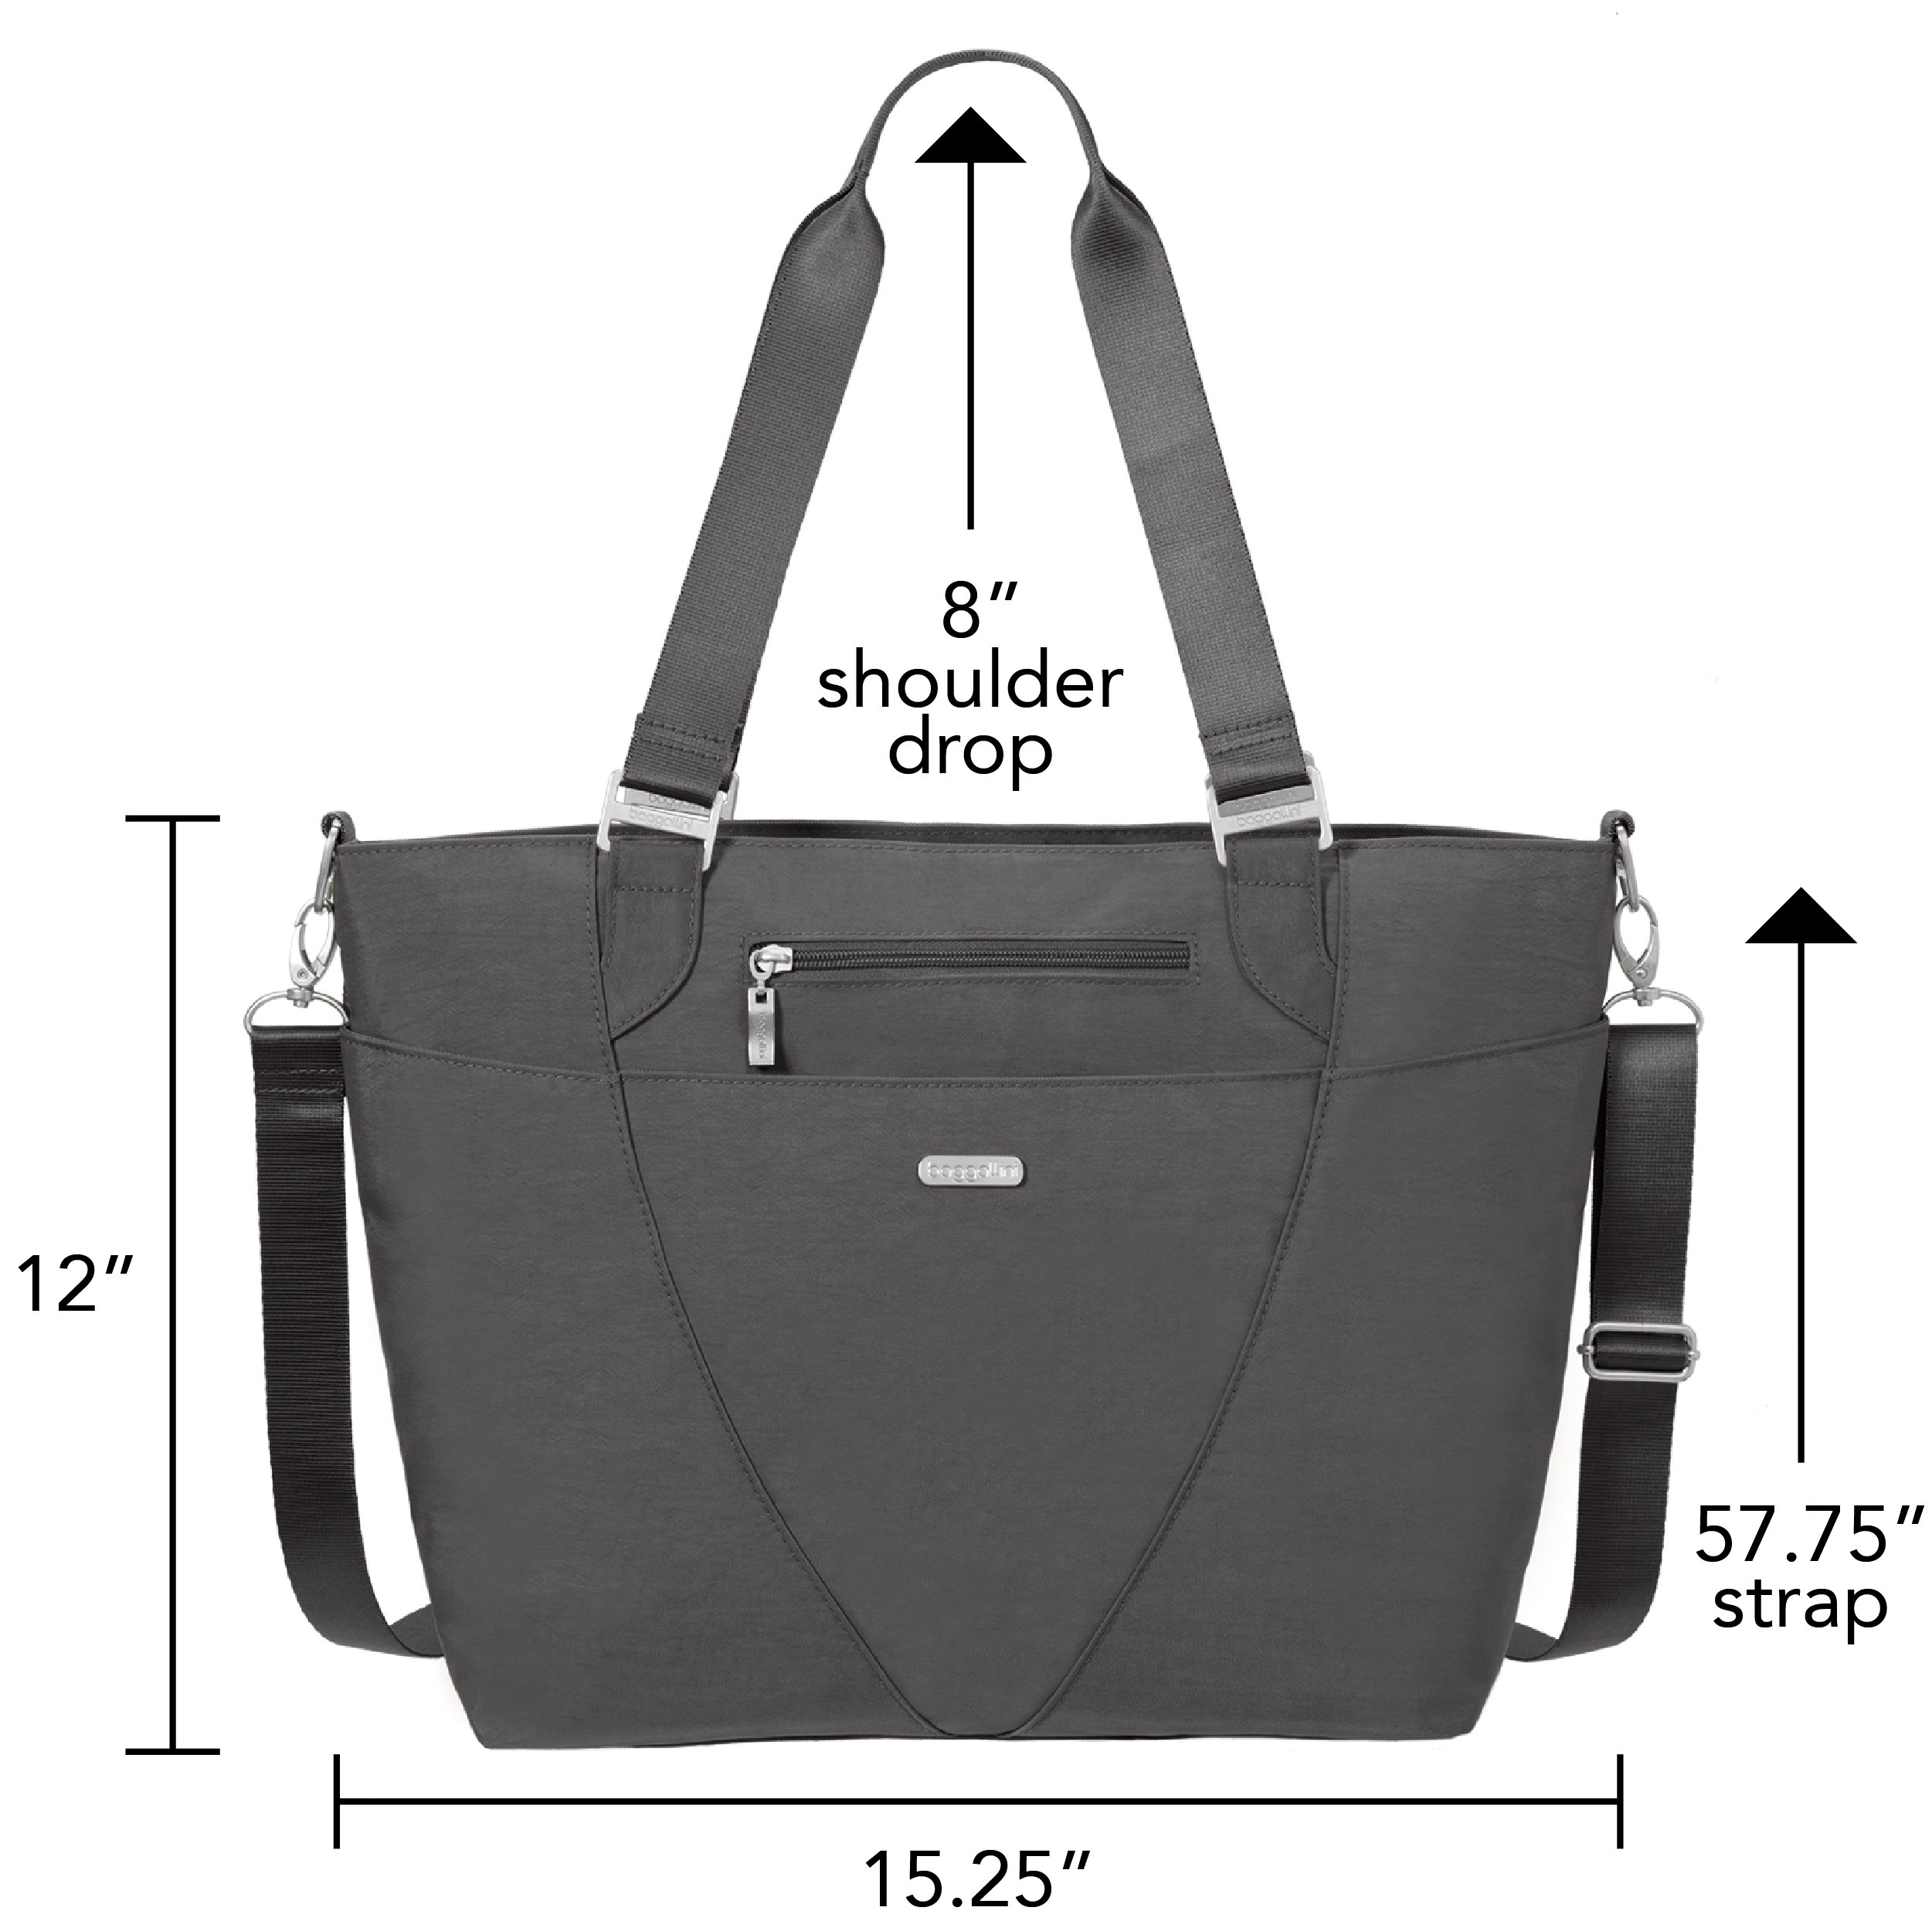 Baggallini Avenue Travel Tote, Charcoal, One Size by Baggallini (Image #3)